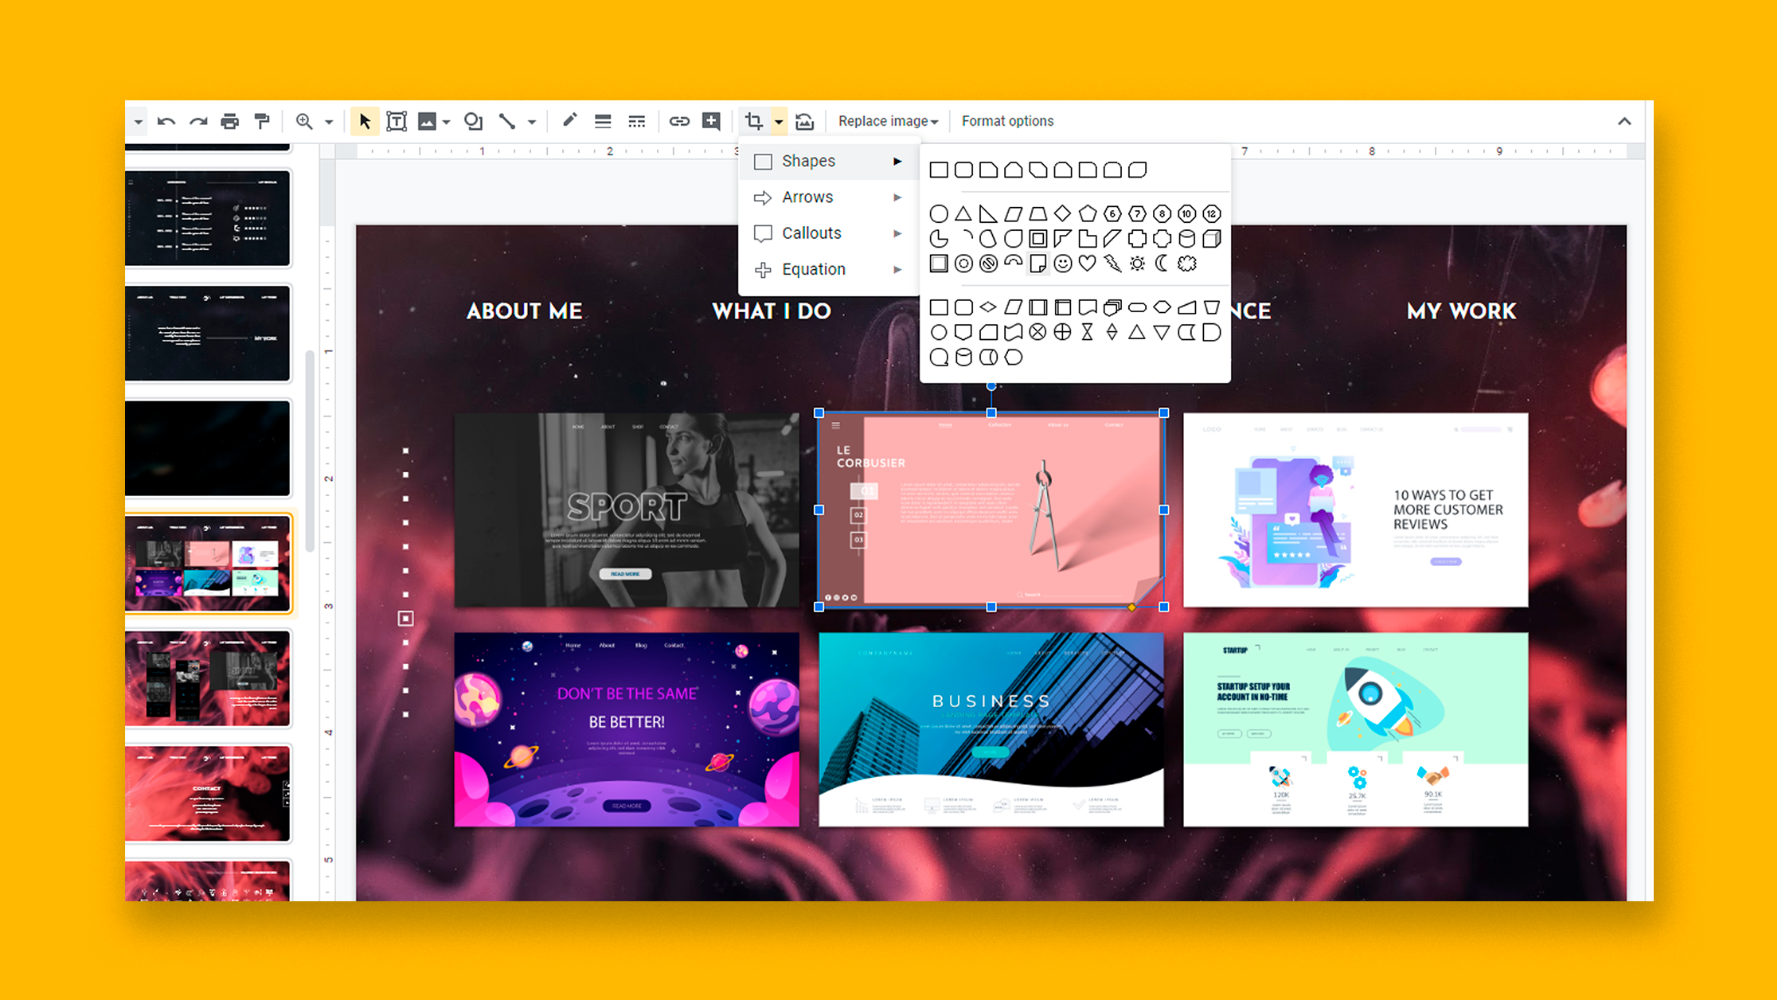 How to Insert, Crop or Mask Images in Google Slides.